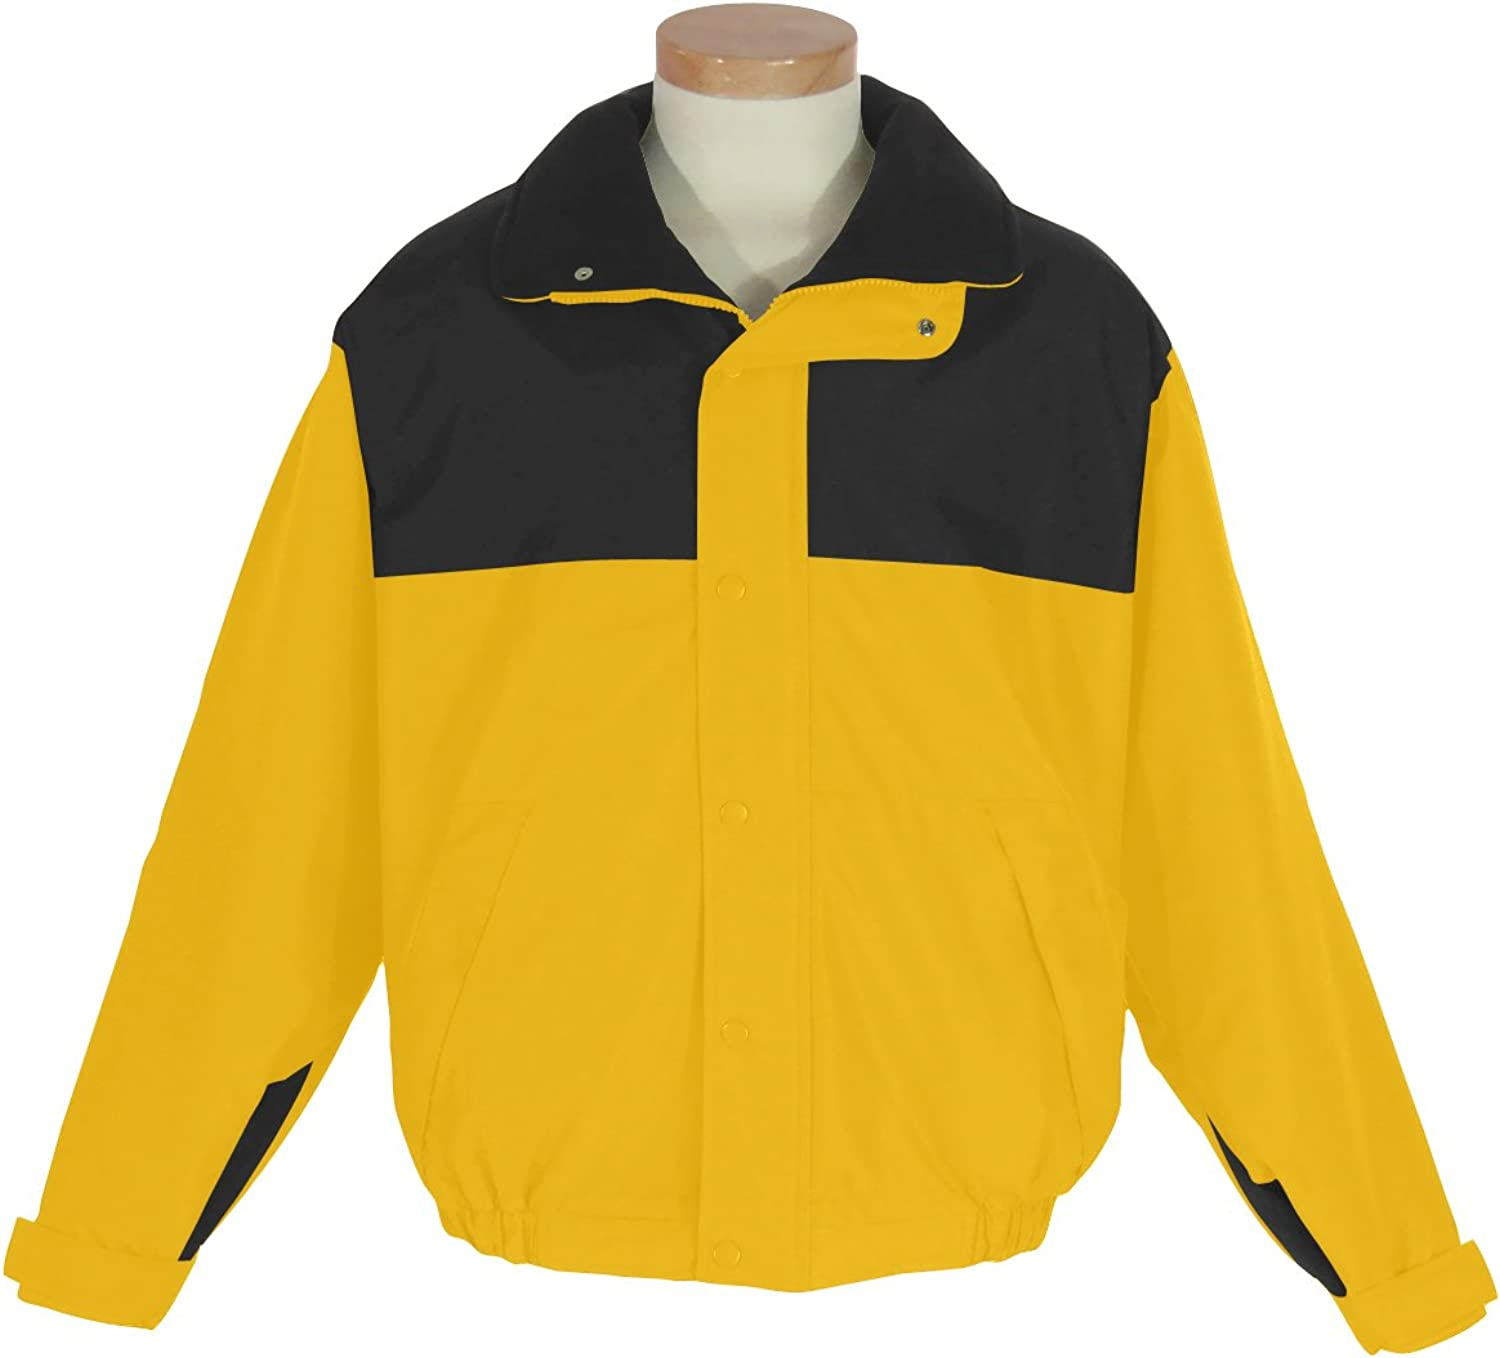 Big Mens Summit Jacket with Contrasting Panels